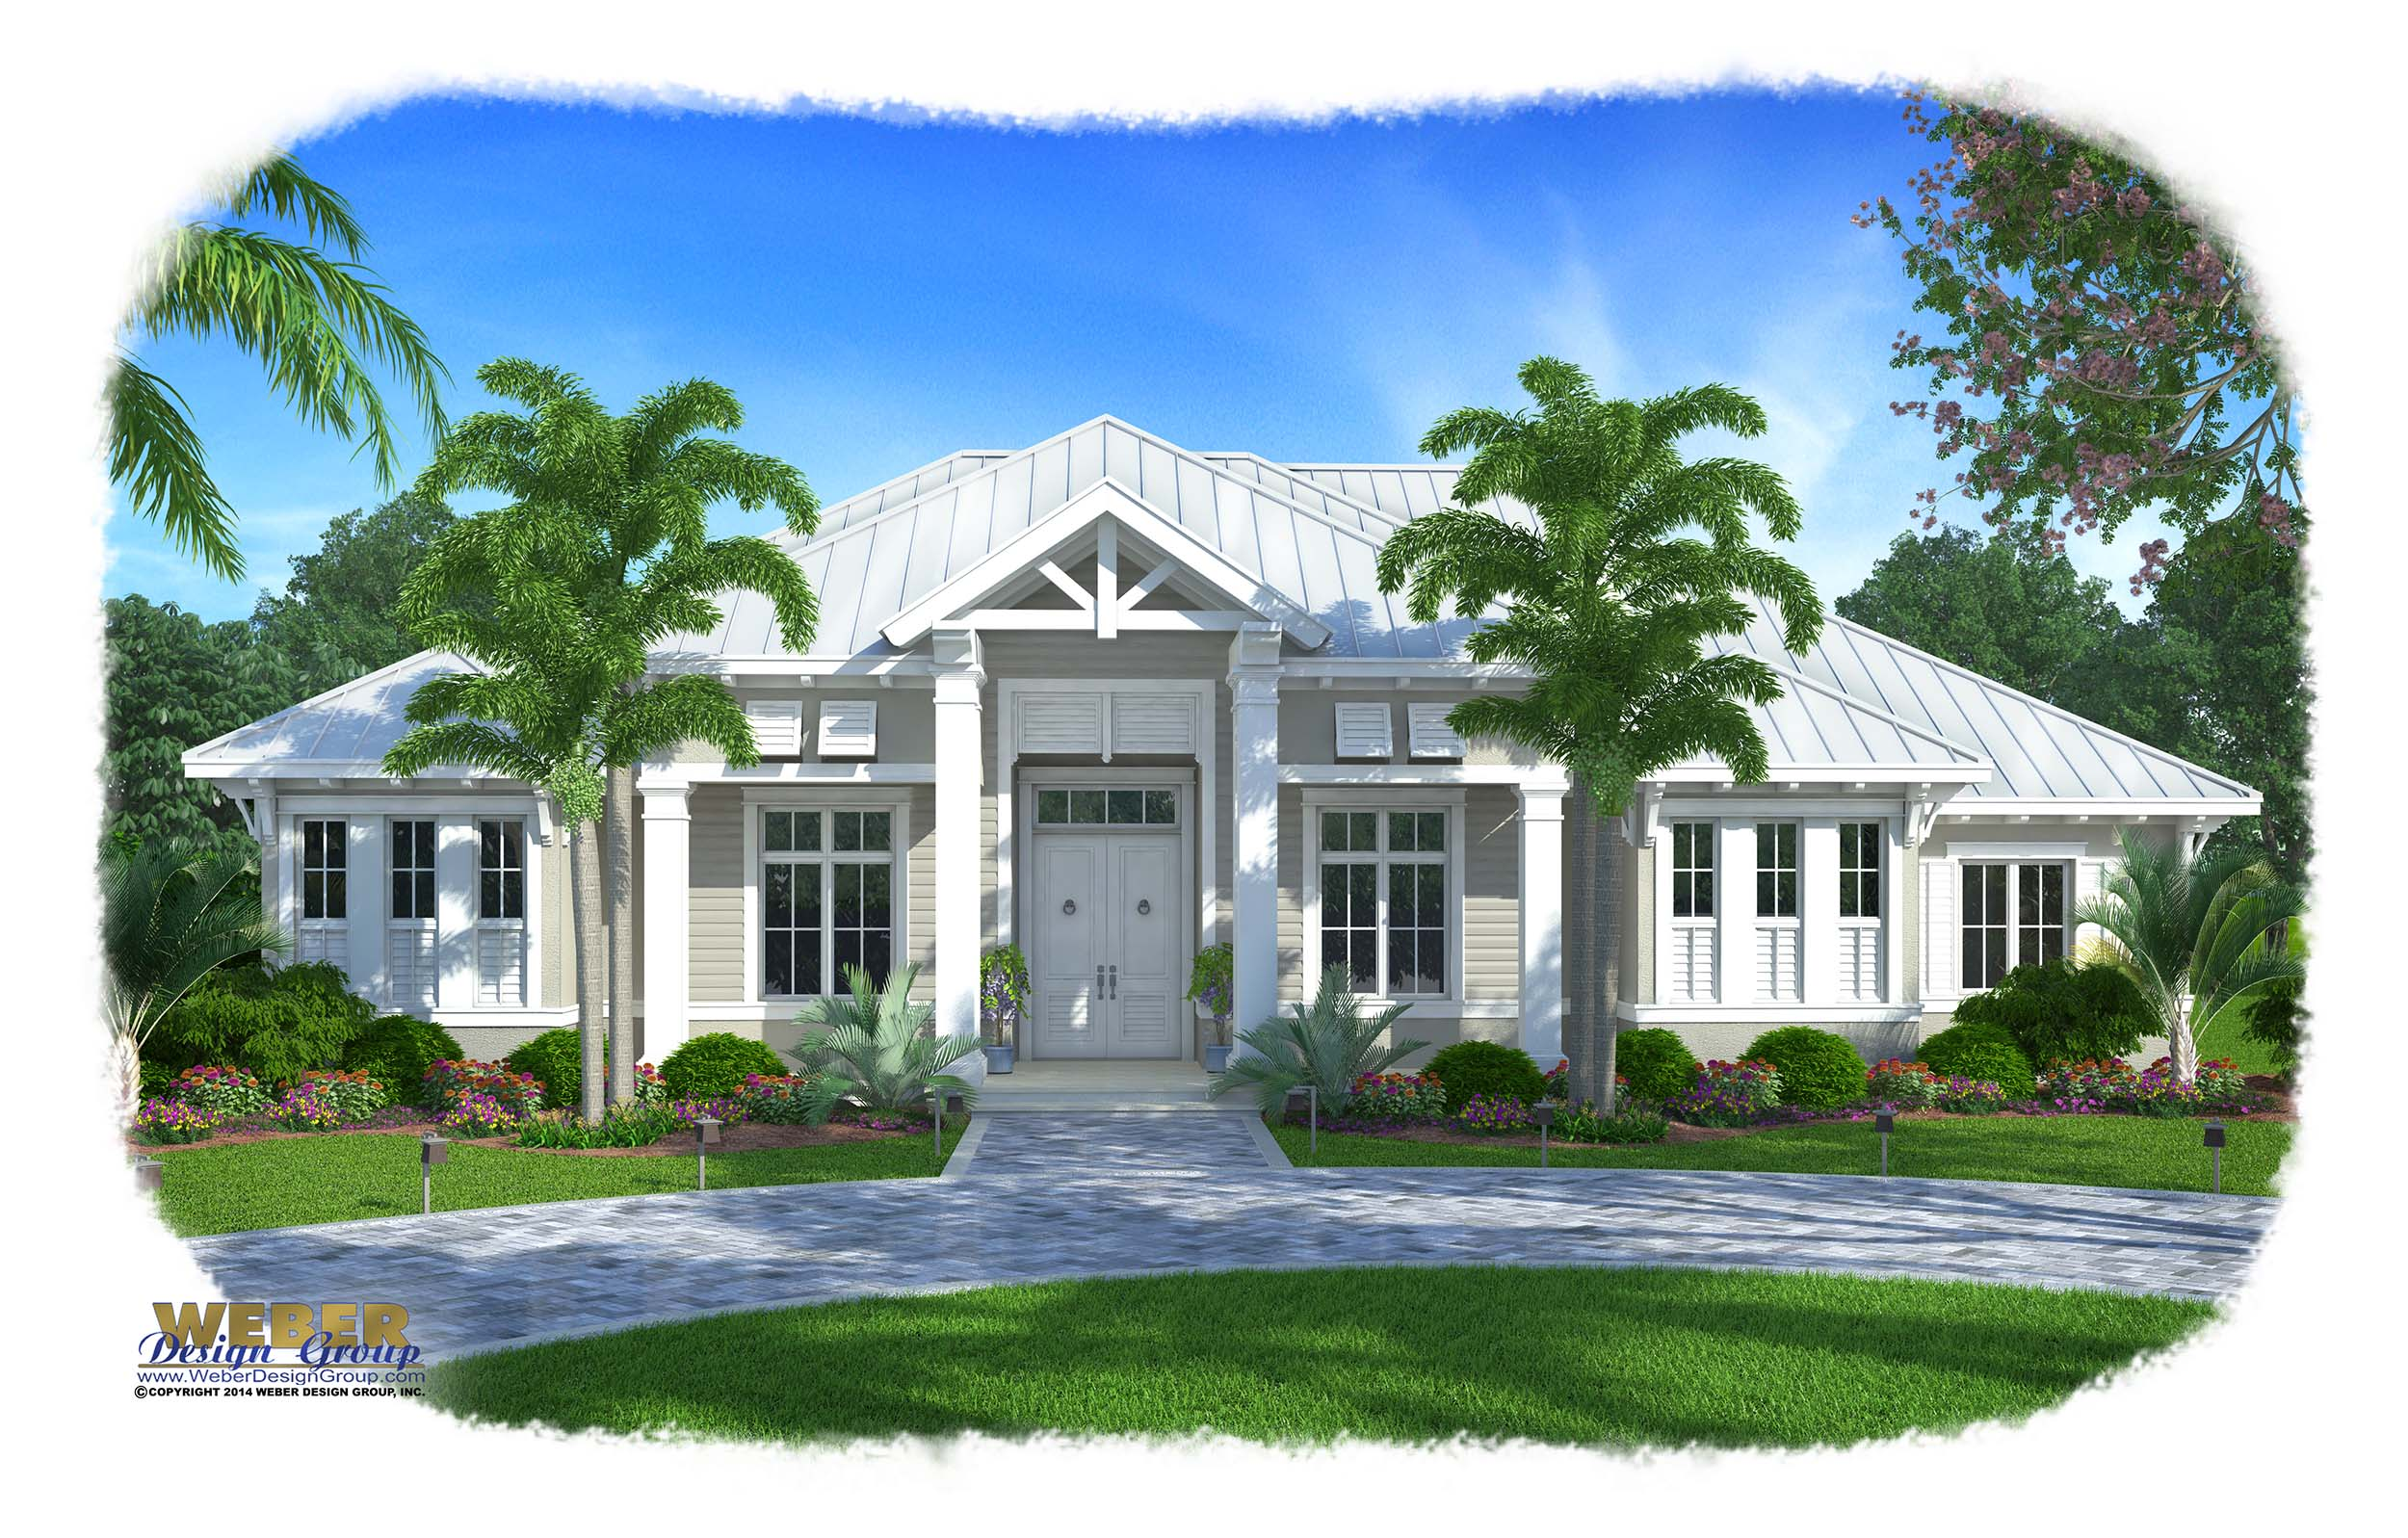 Florida cottage house plans for Florida house plans with photos